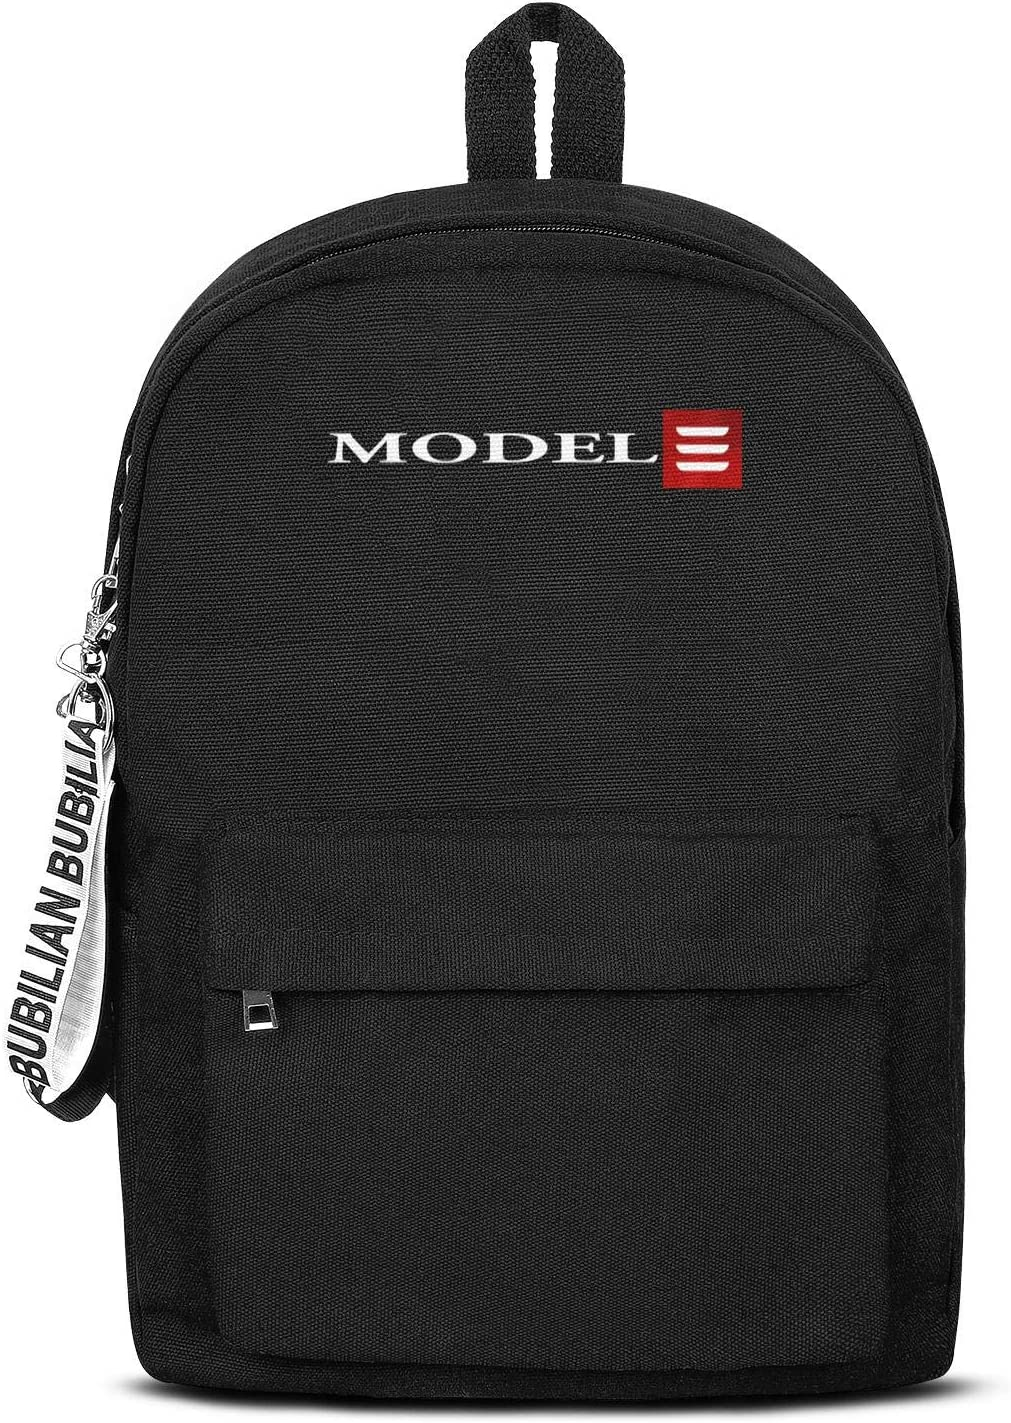 School College Black Book Bags with Pencil Case Tesla-Logo- Casual Travel Laptop Canvas Backpacks